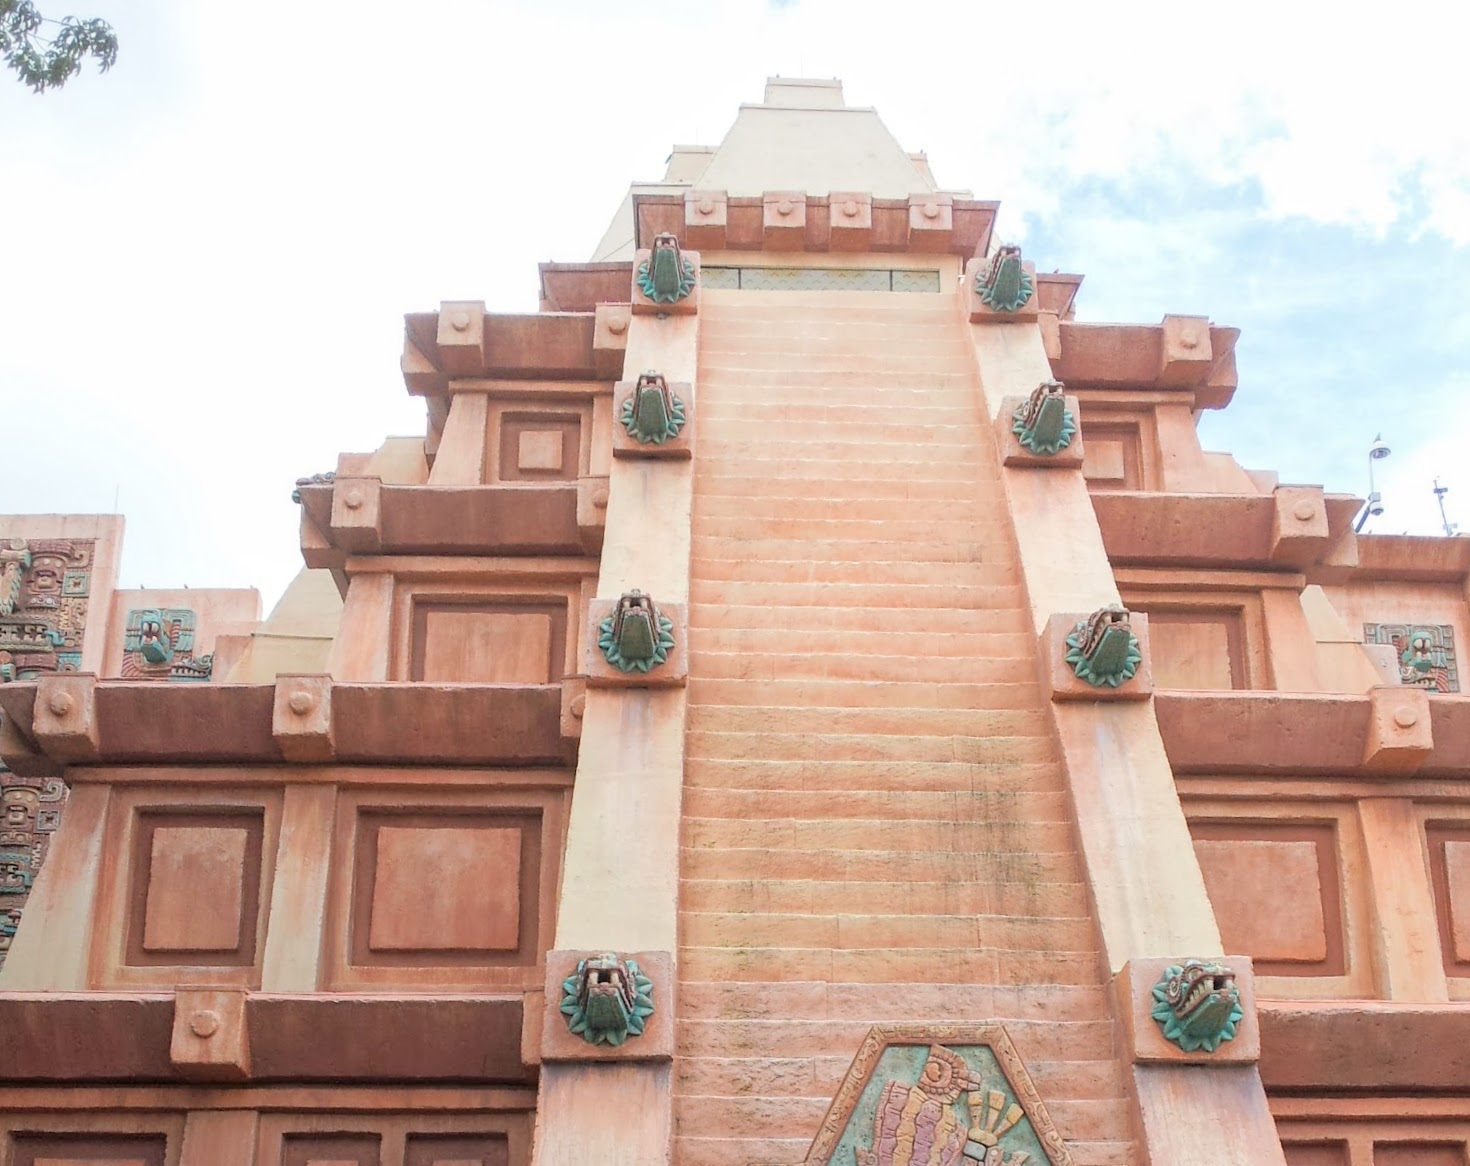 Things You Must Do in Epcot: Mexico Pavilion